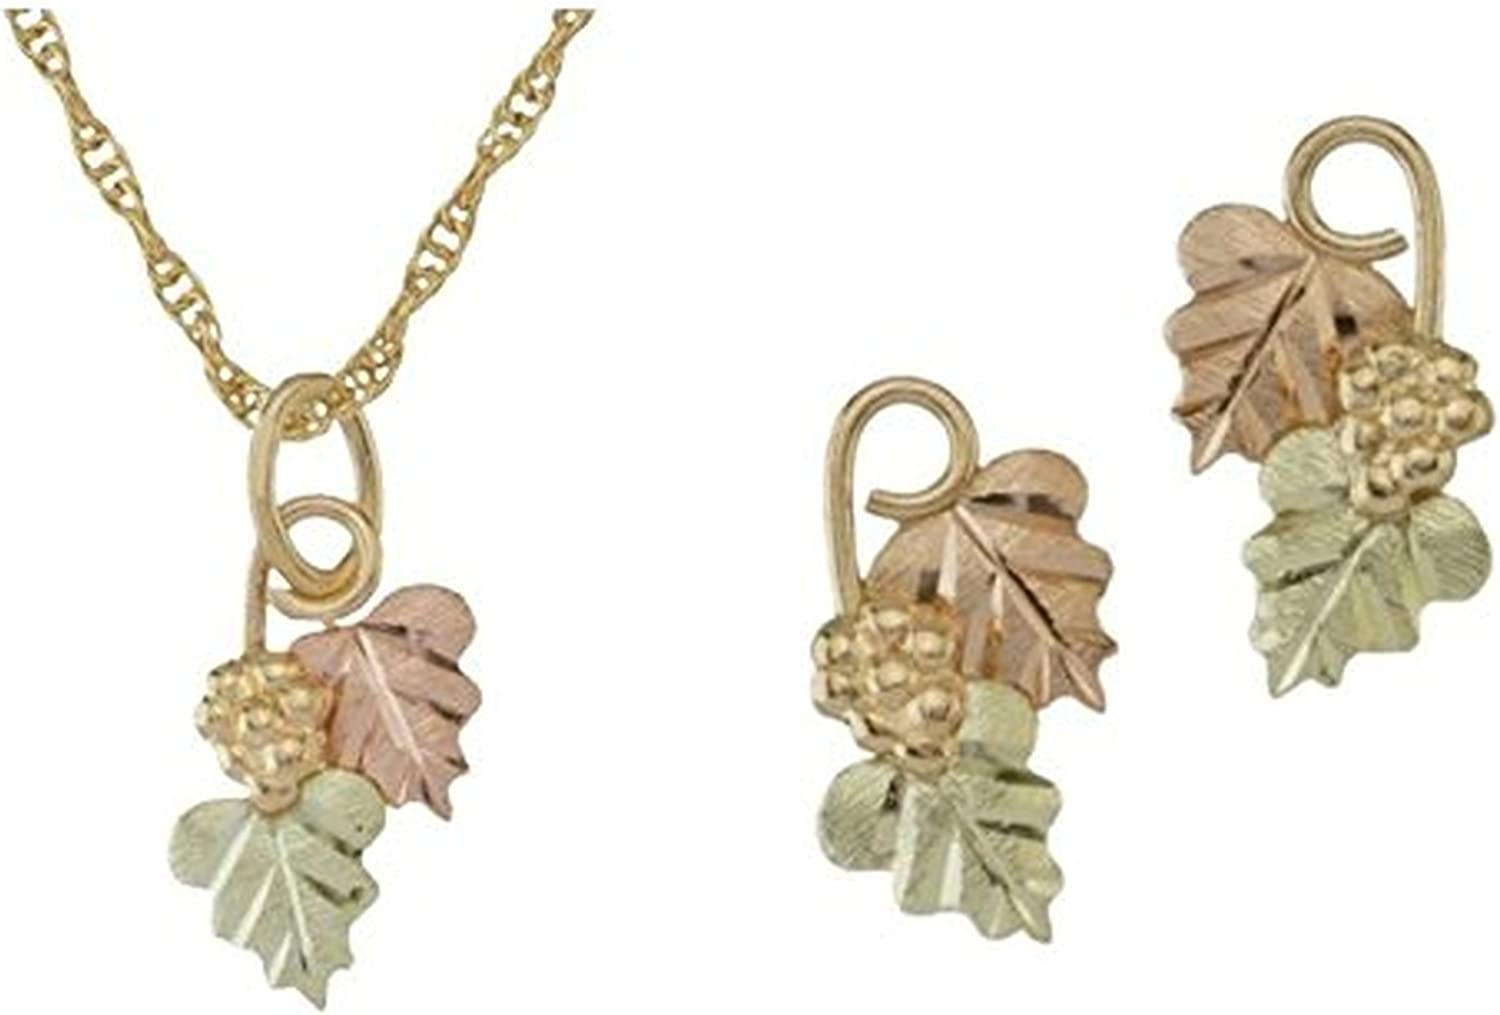 Black Hills Gold Motif Drop Necklace and Earrings Jewelry Set, 10k Yellow Gold, 12k Rose and Green Gold, 18